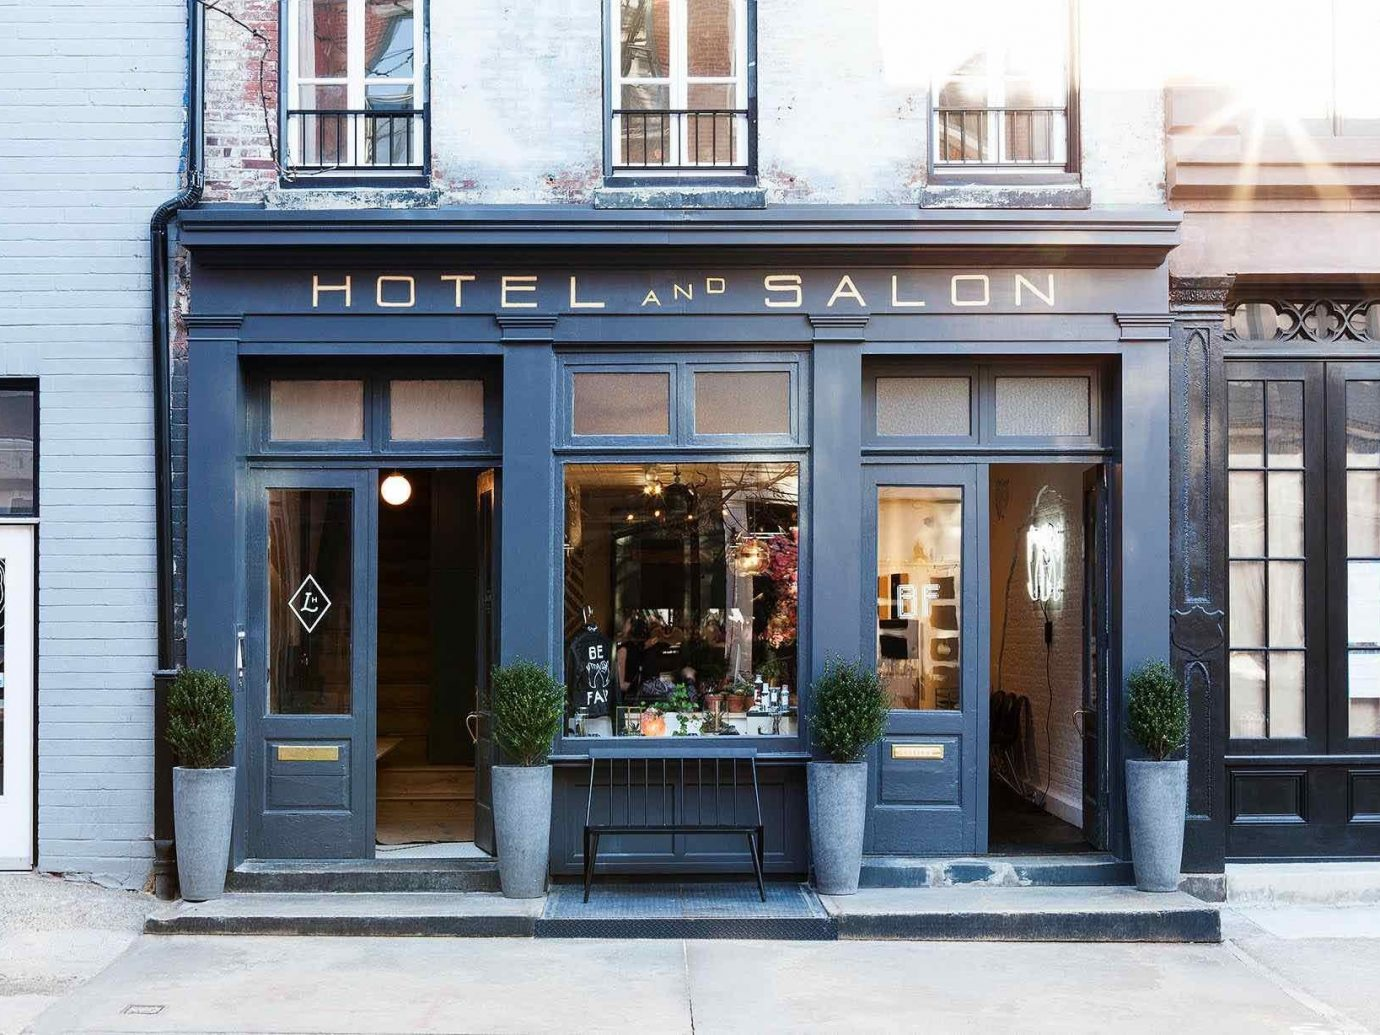 Boutique Hotels Hotels Philadelphia facade door window building